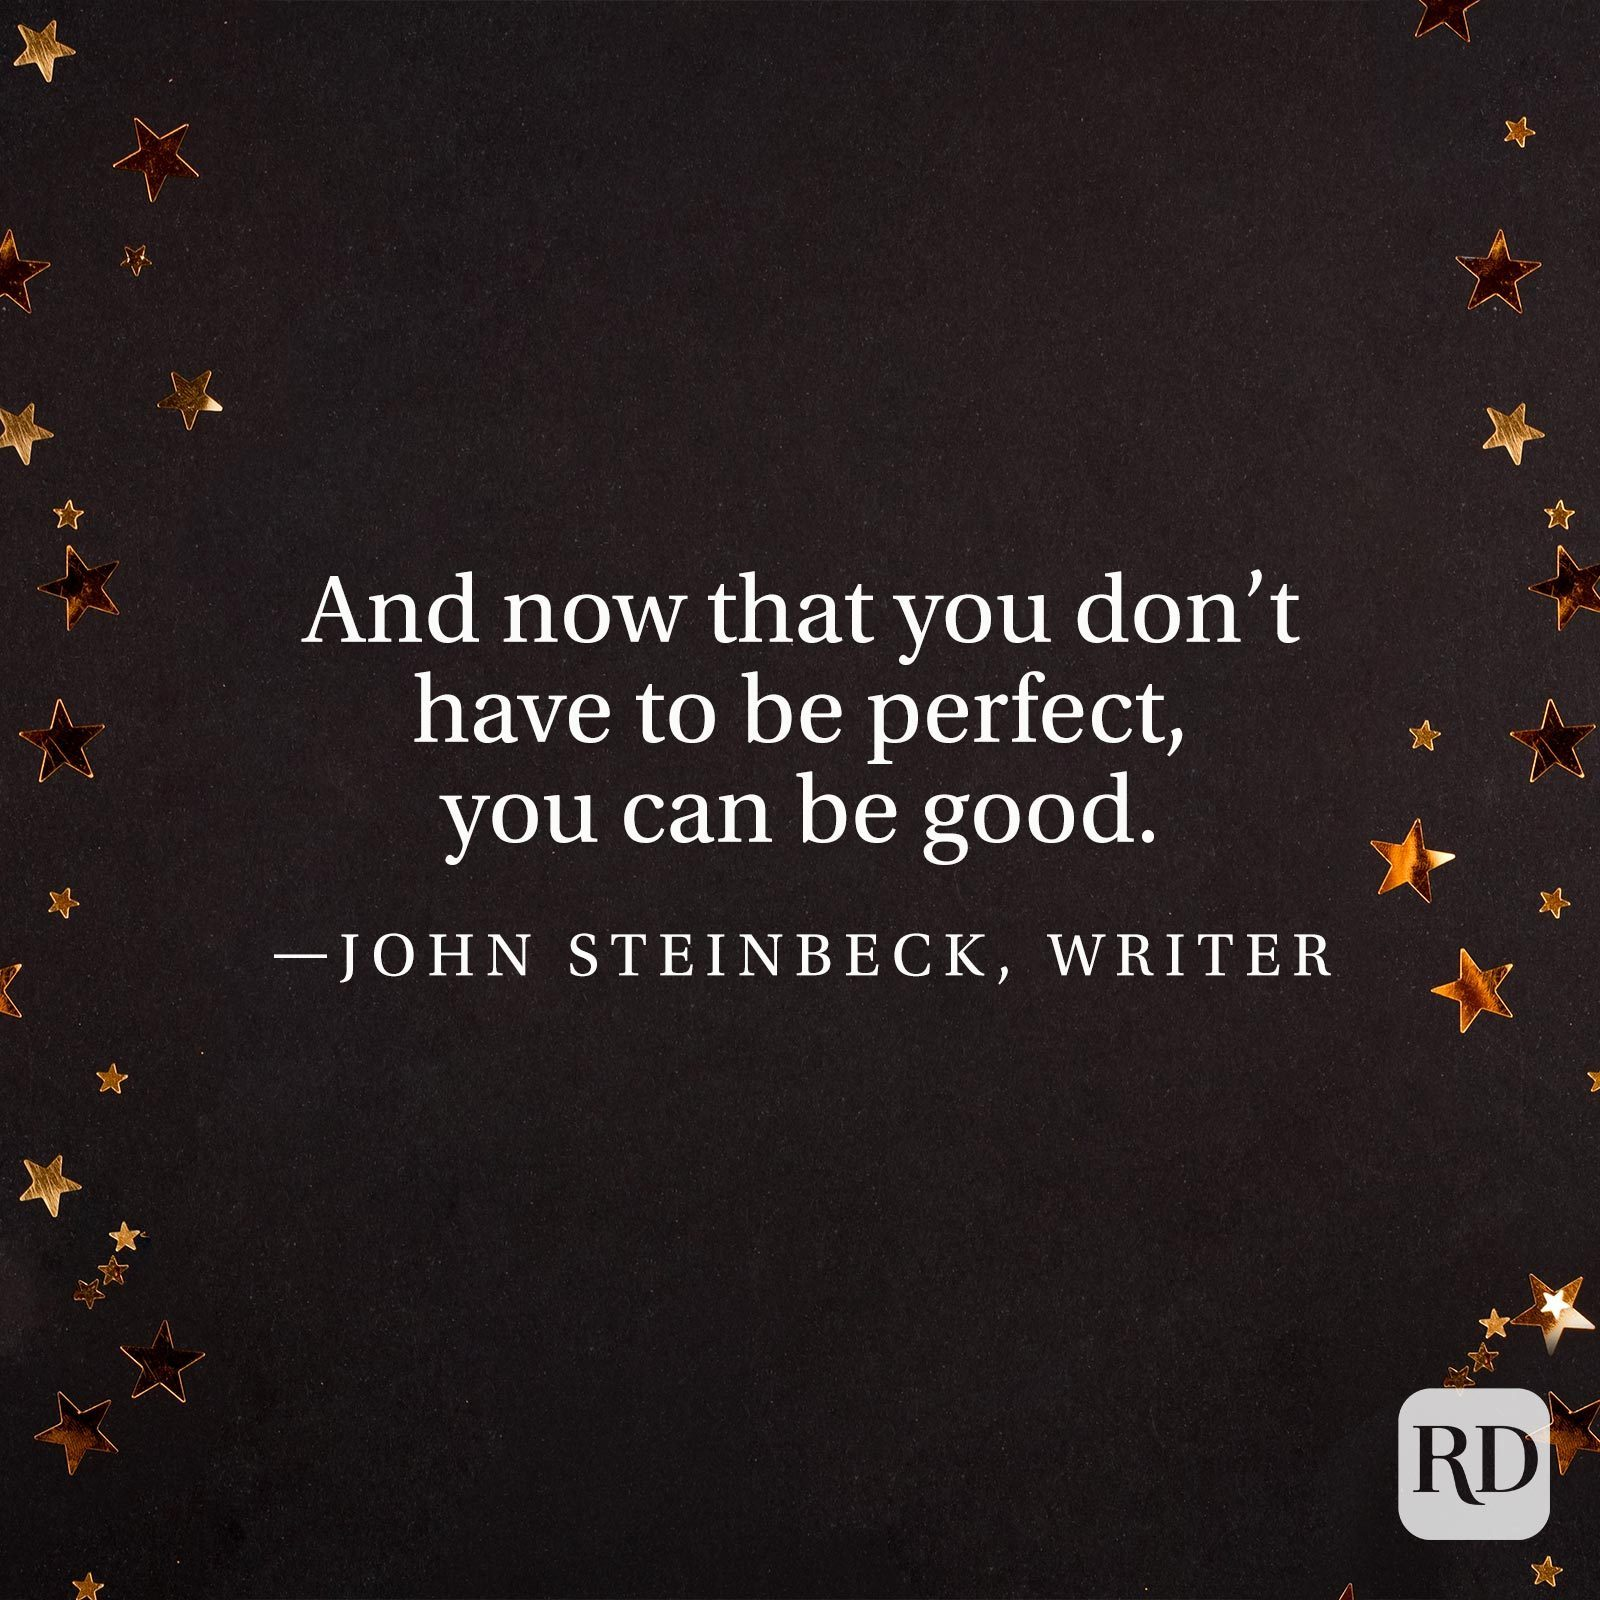 """And now that you don't have to be perfect, you can be good."" —John Steinbeck, writer"